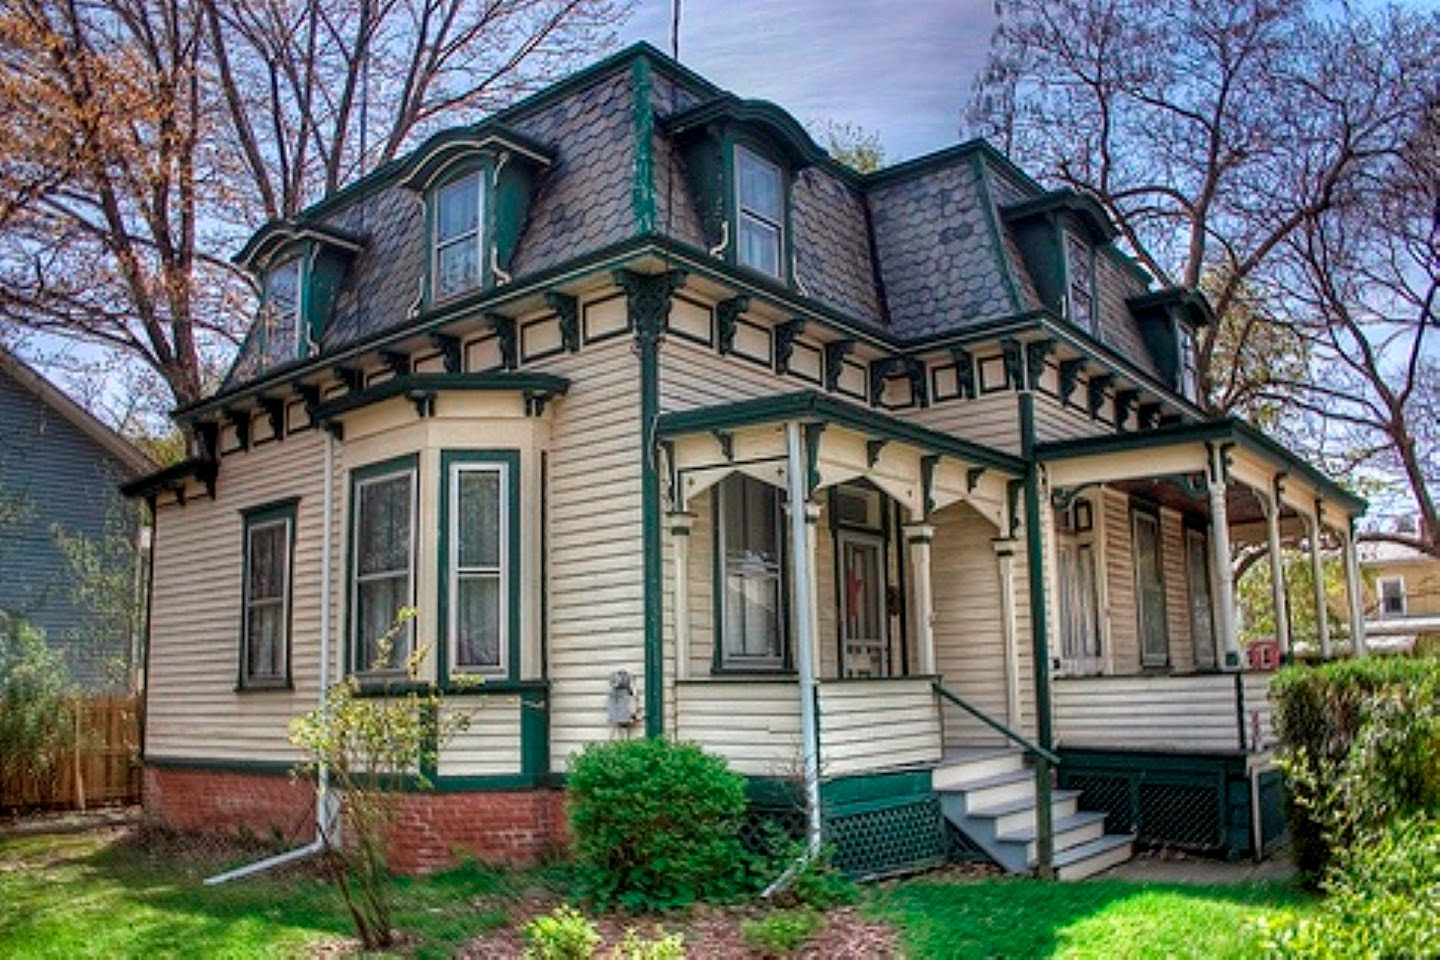 Roof Design Ideas: Home Priority: Breathtaking House Designs With Mansard Roof